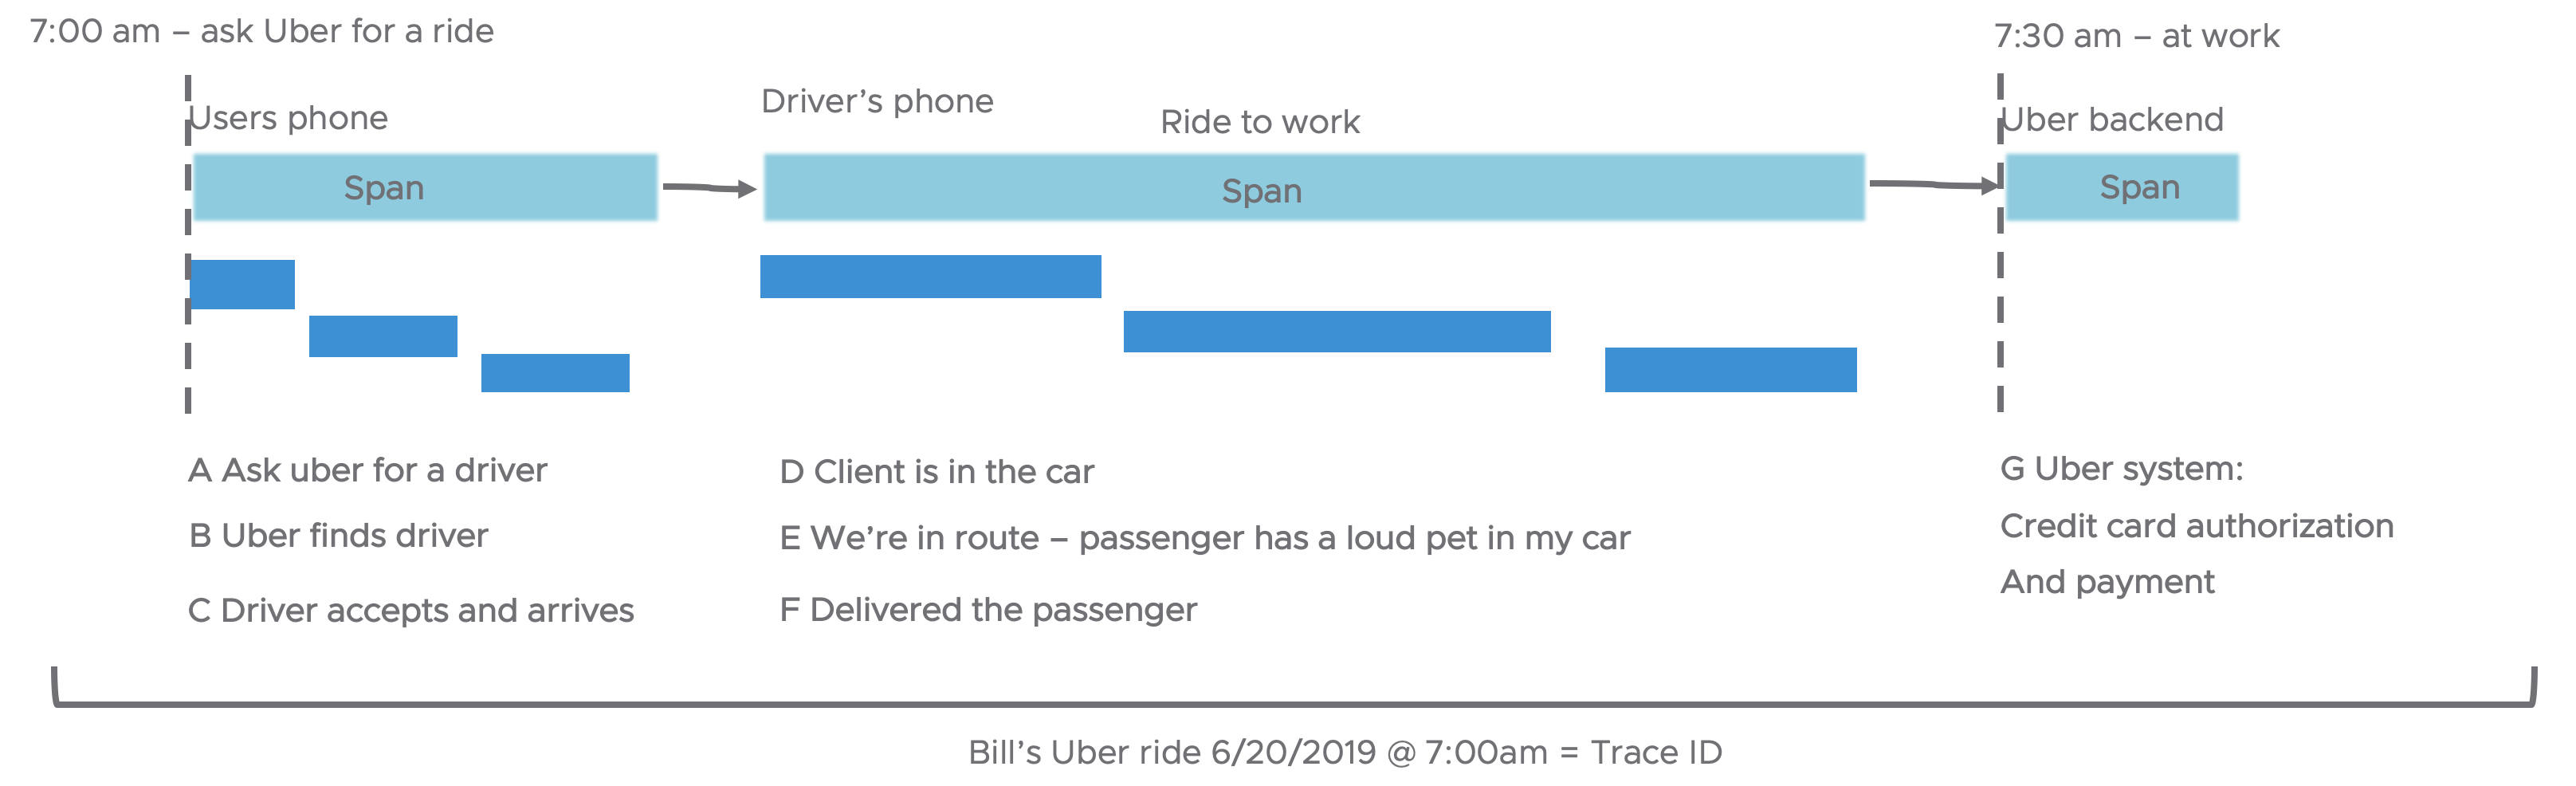 Interactions with rideshare app